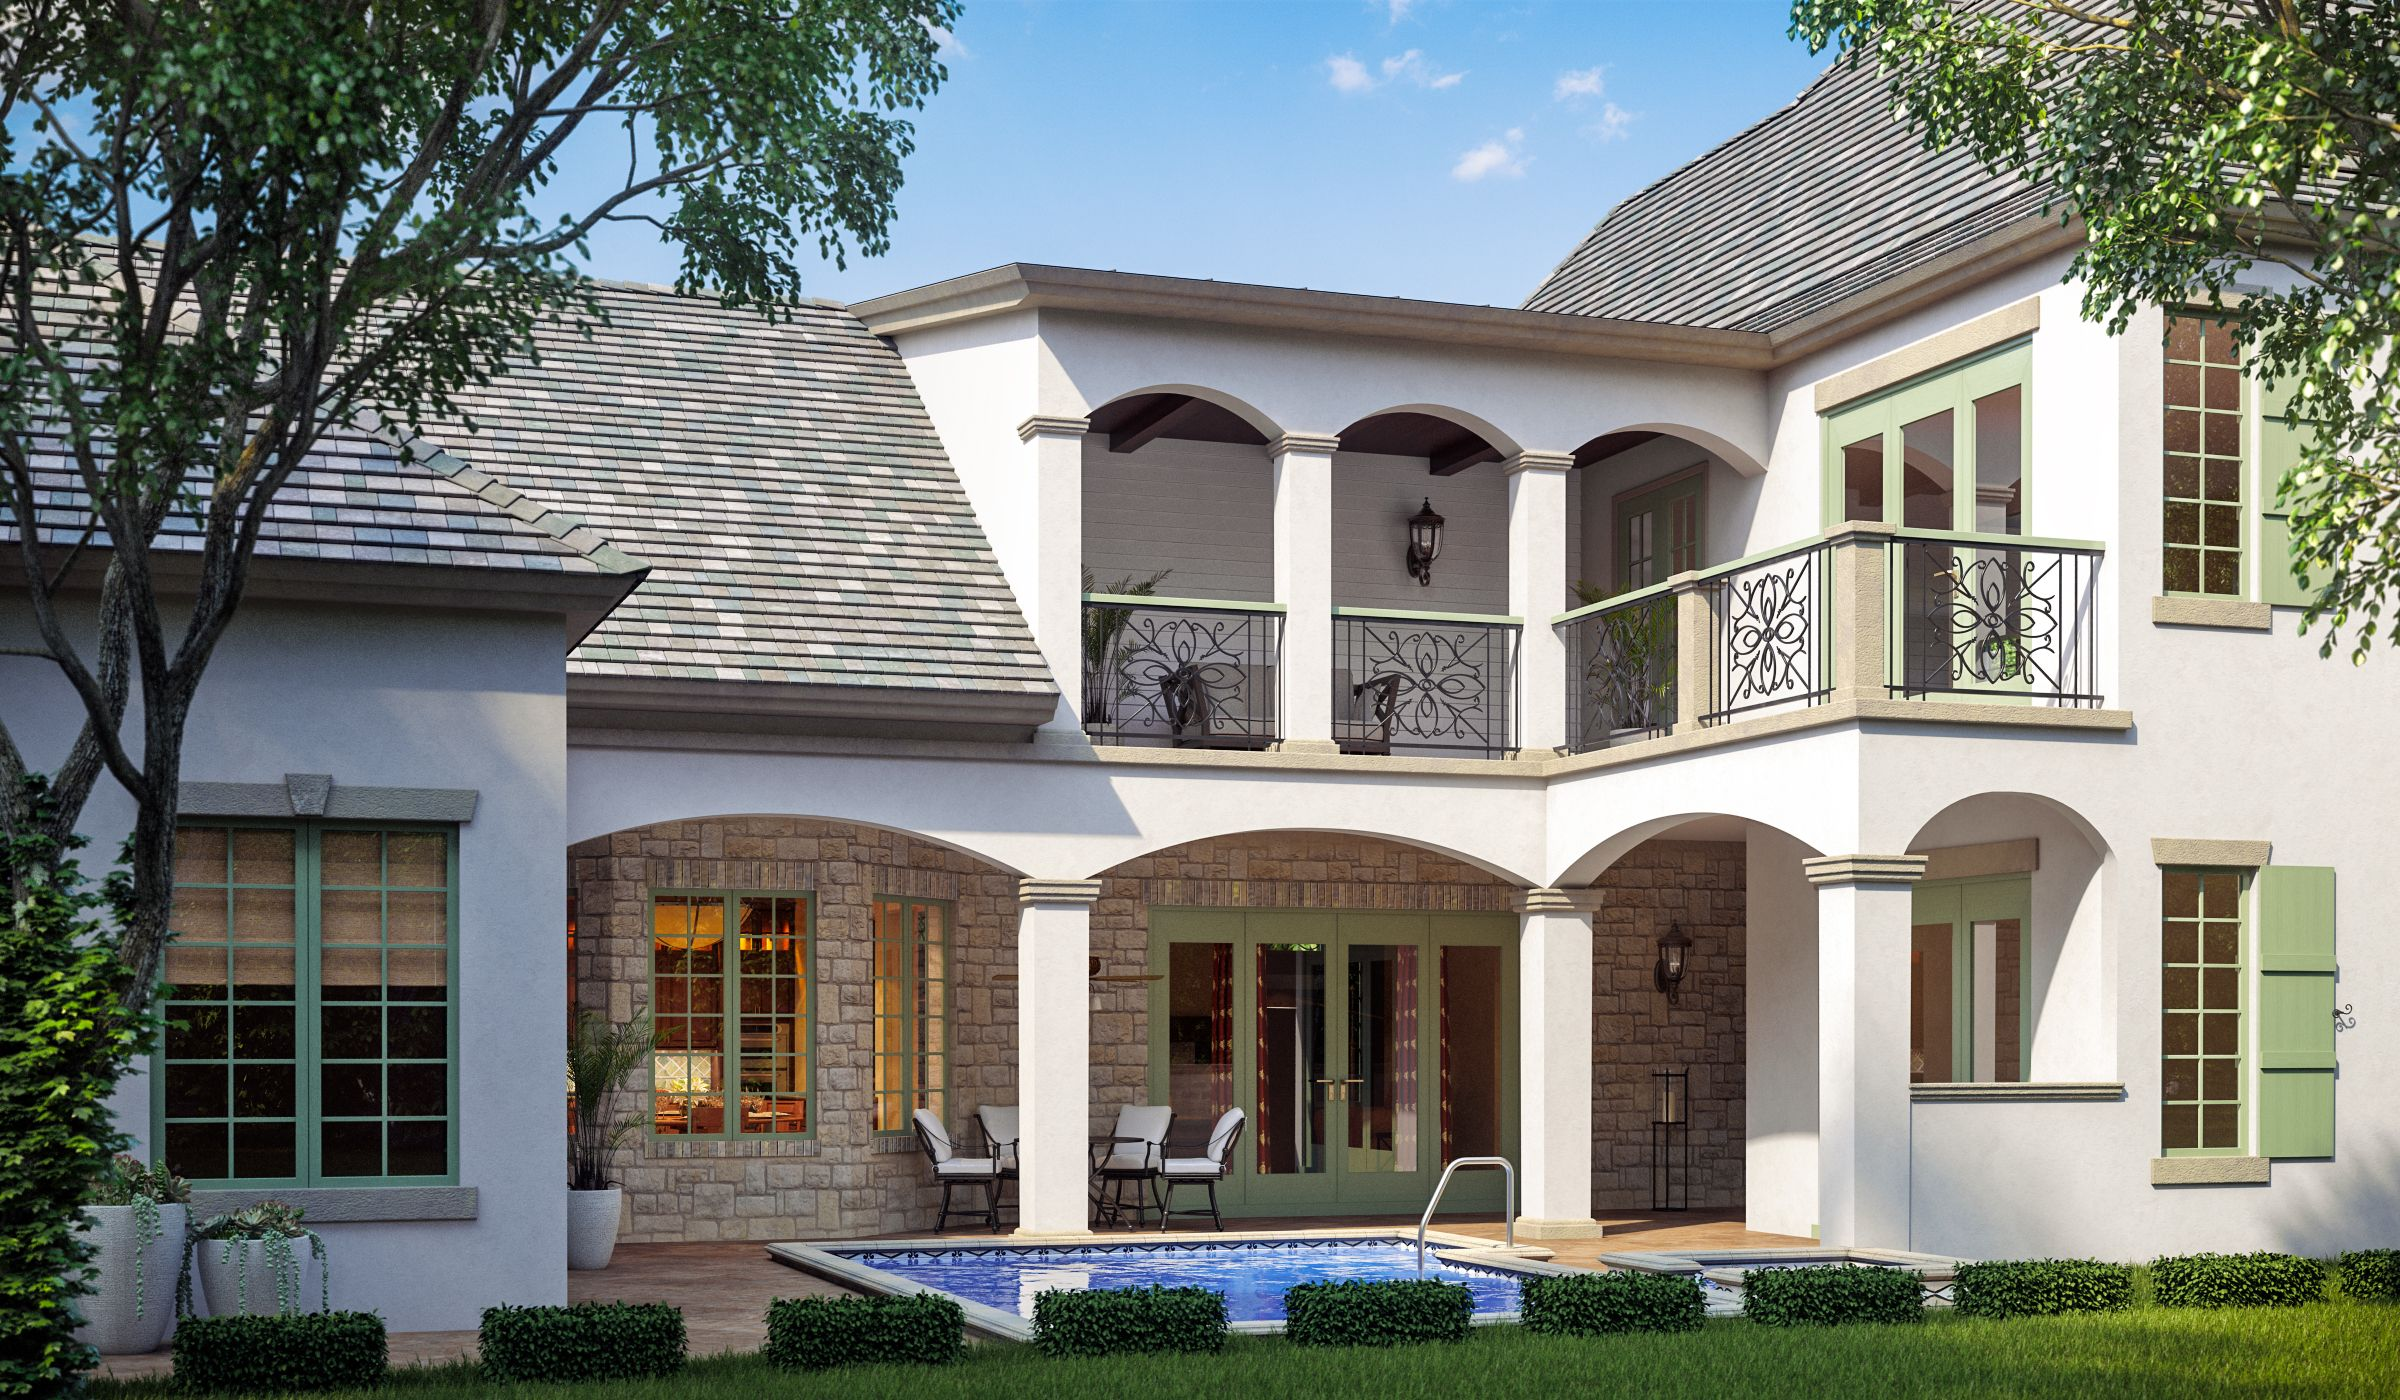 Pin On European House Plans The Sater Design Collection